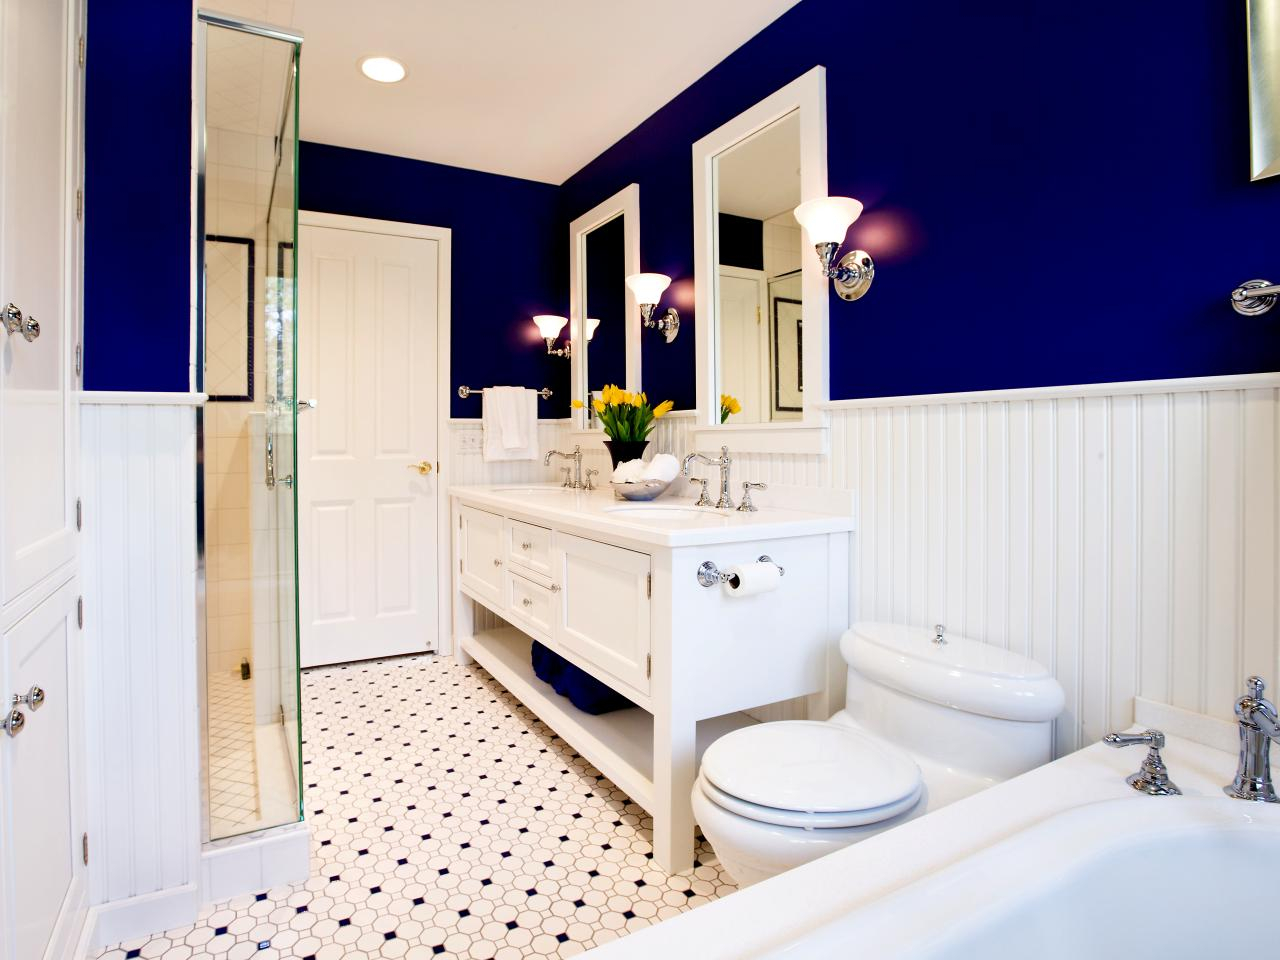 Modular Foolproof Bathroom Color Combos | Hgtv with New Small Bathroom Paint Ideas